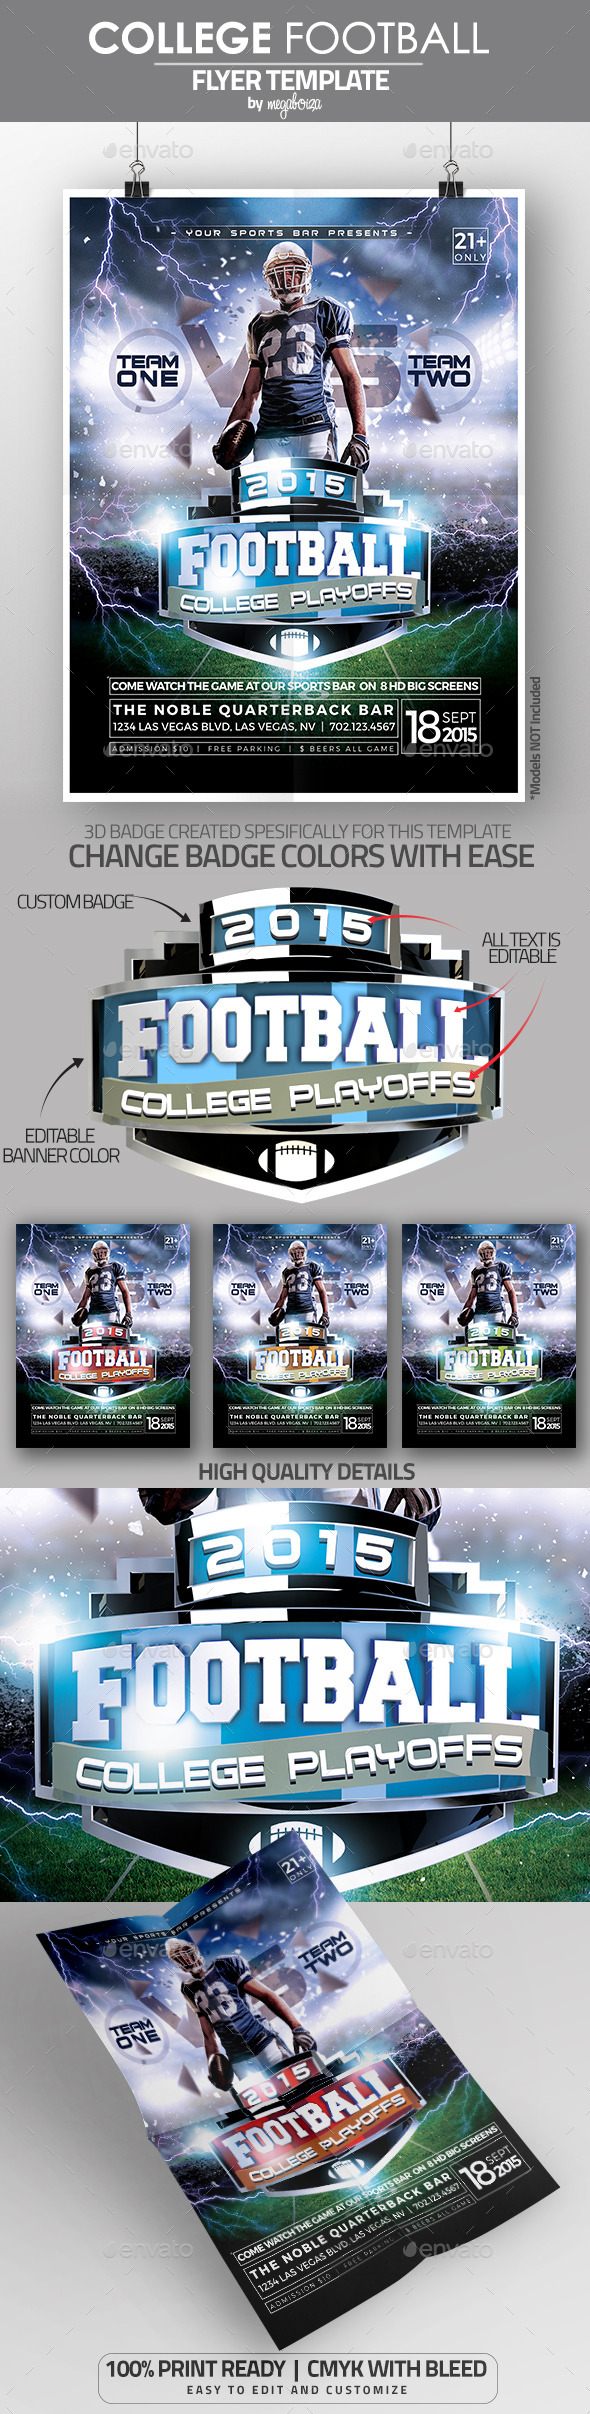 College Football Playoffs Flyer / Poster Template - Sports Events